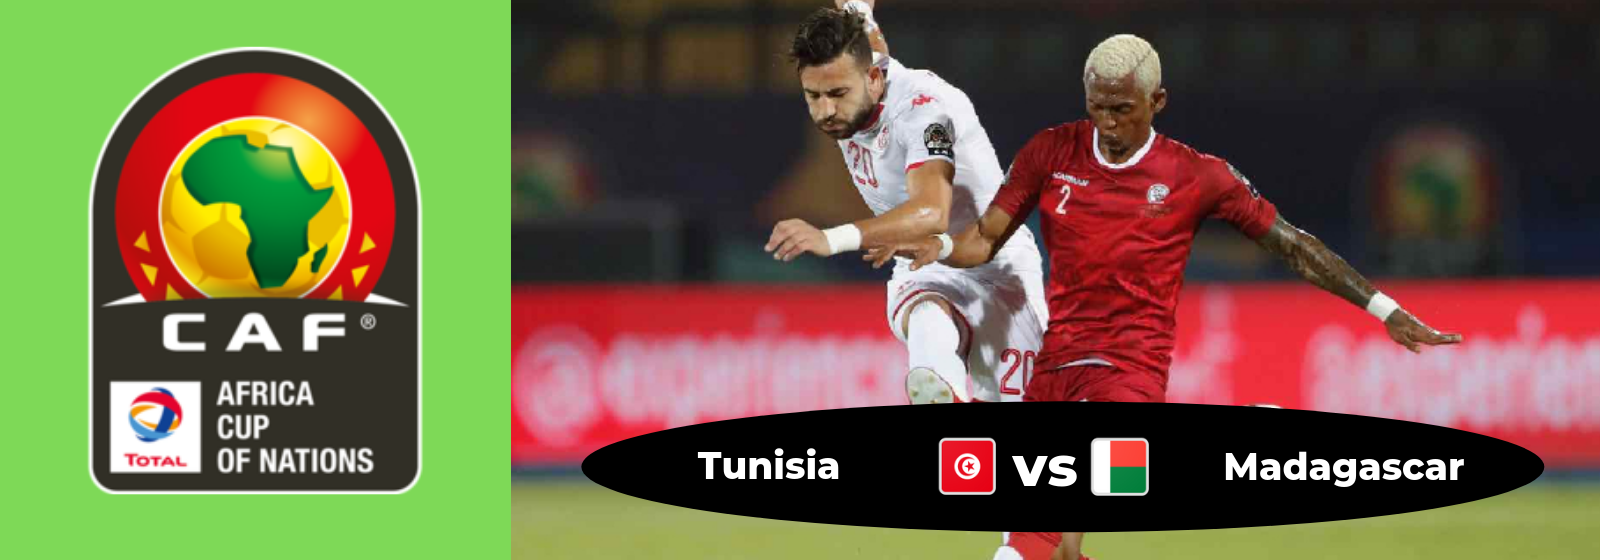 Africa Cup of Nations Tunisia Vs. Madagascar Asian Connect